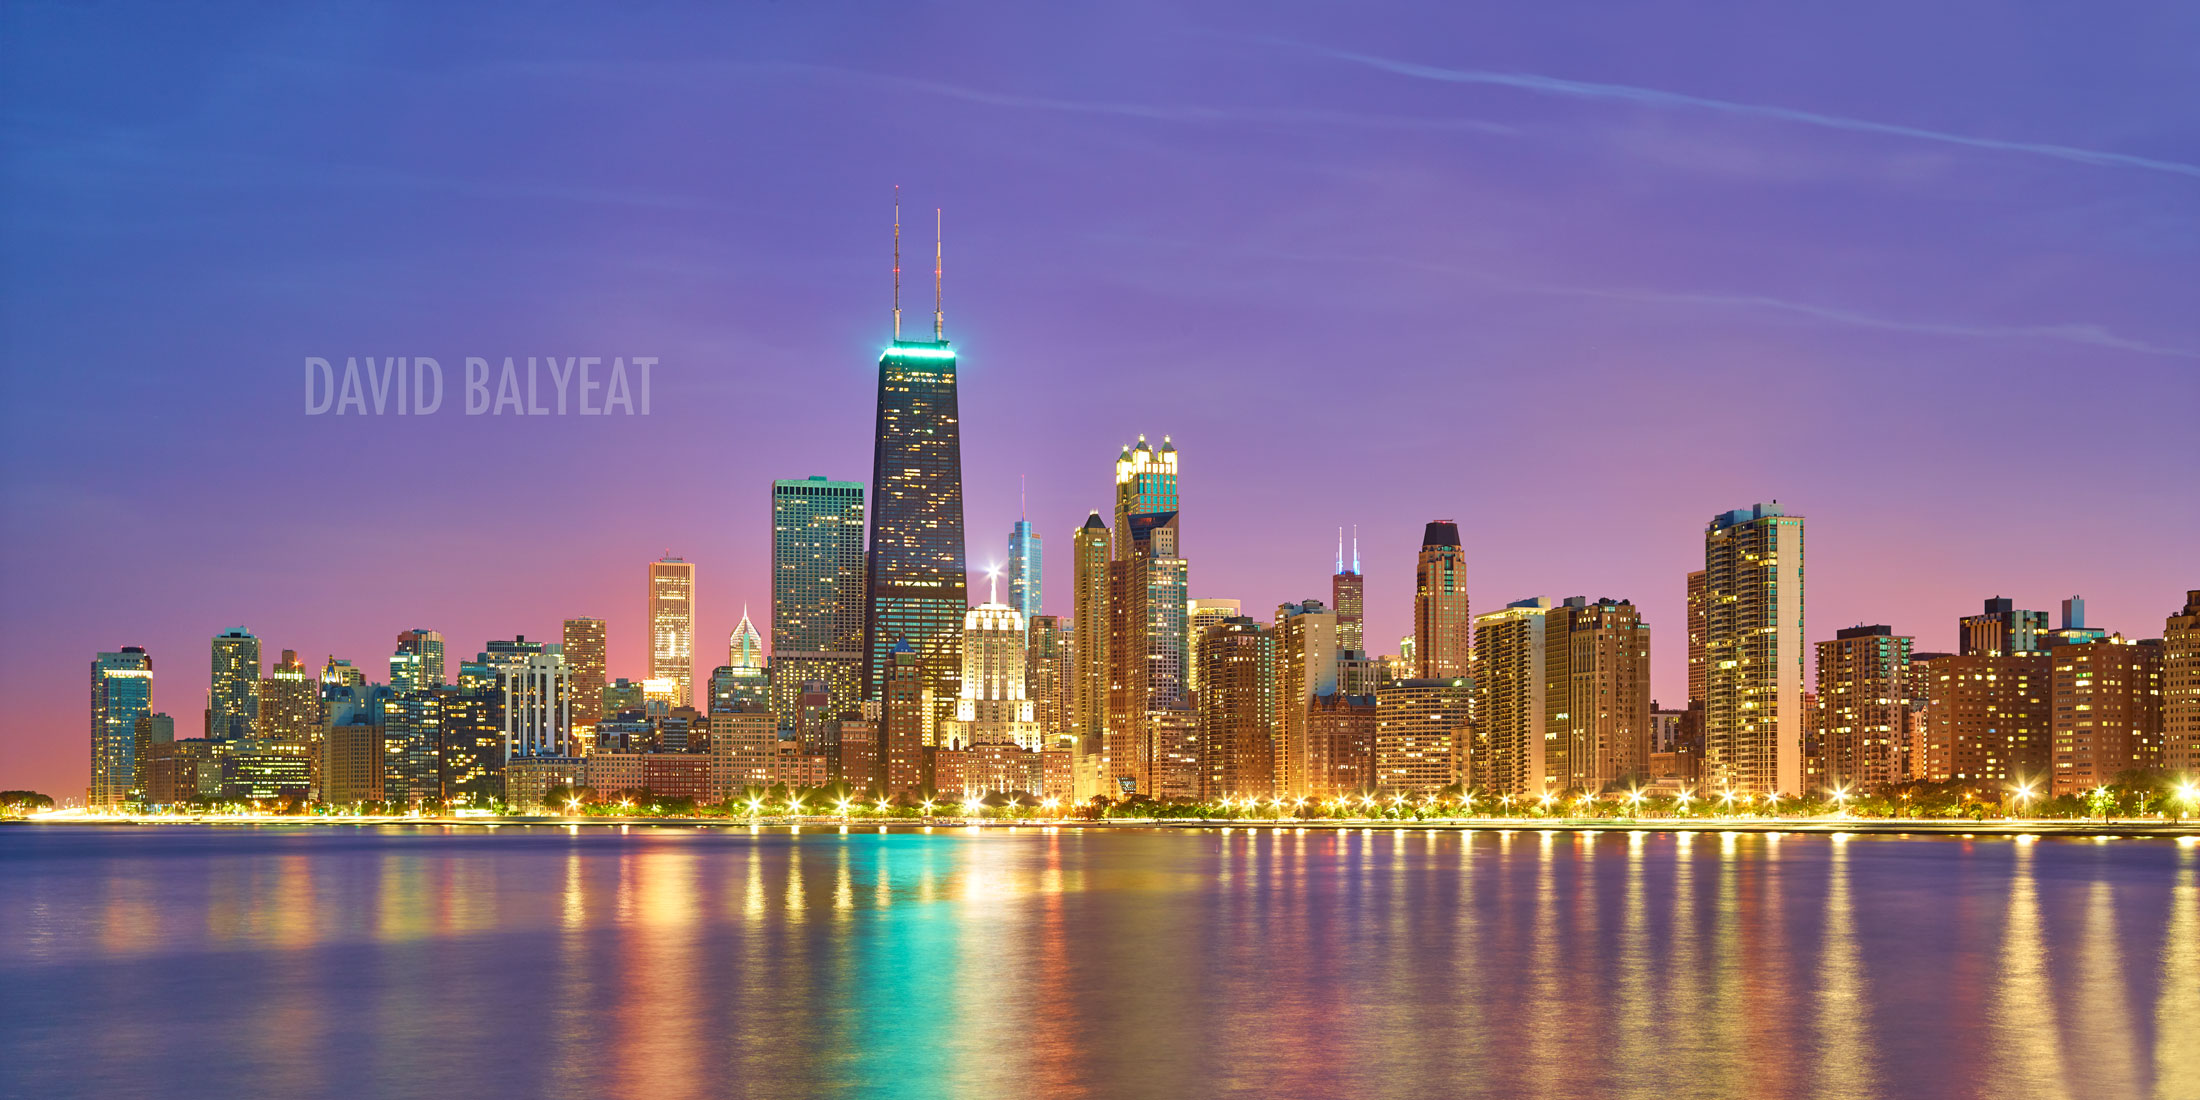 Fall Scenes Wallpaper North Chicago Skyline David Balyeat Photography Store